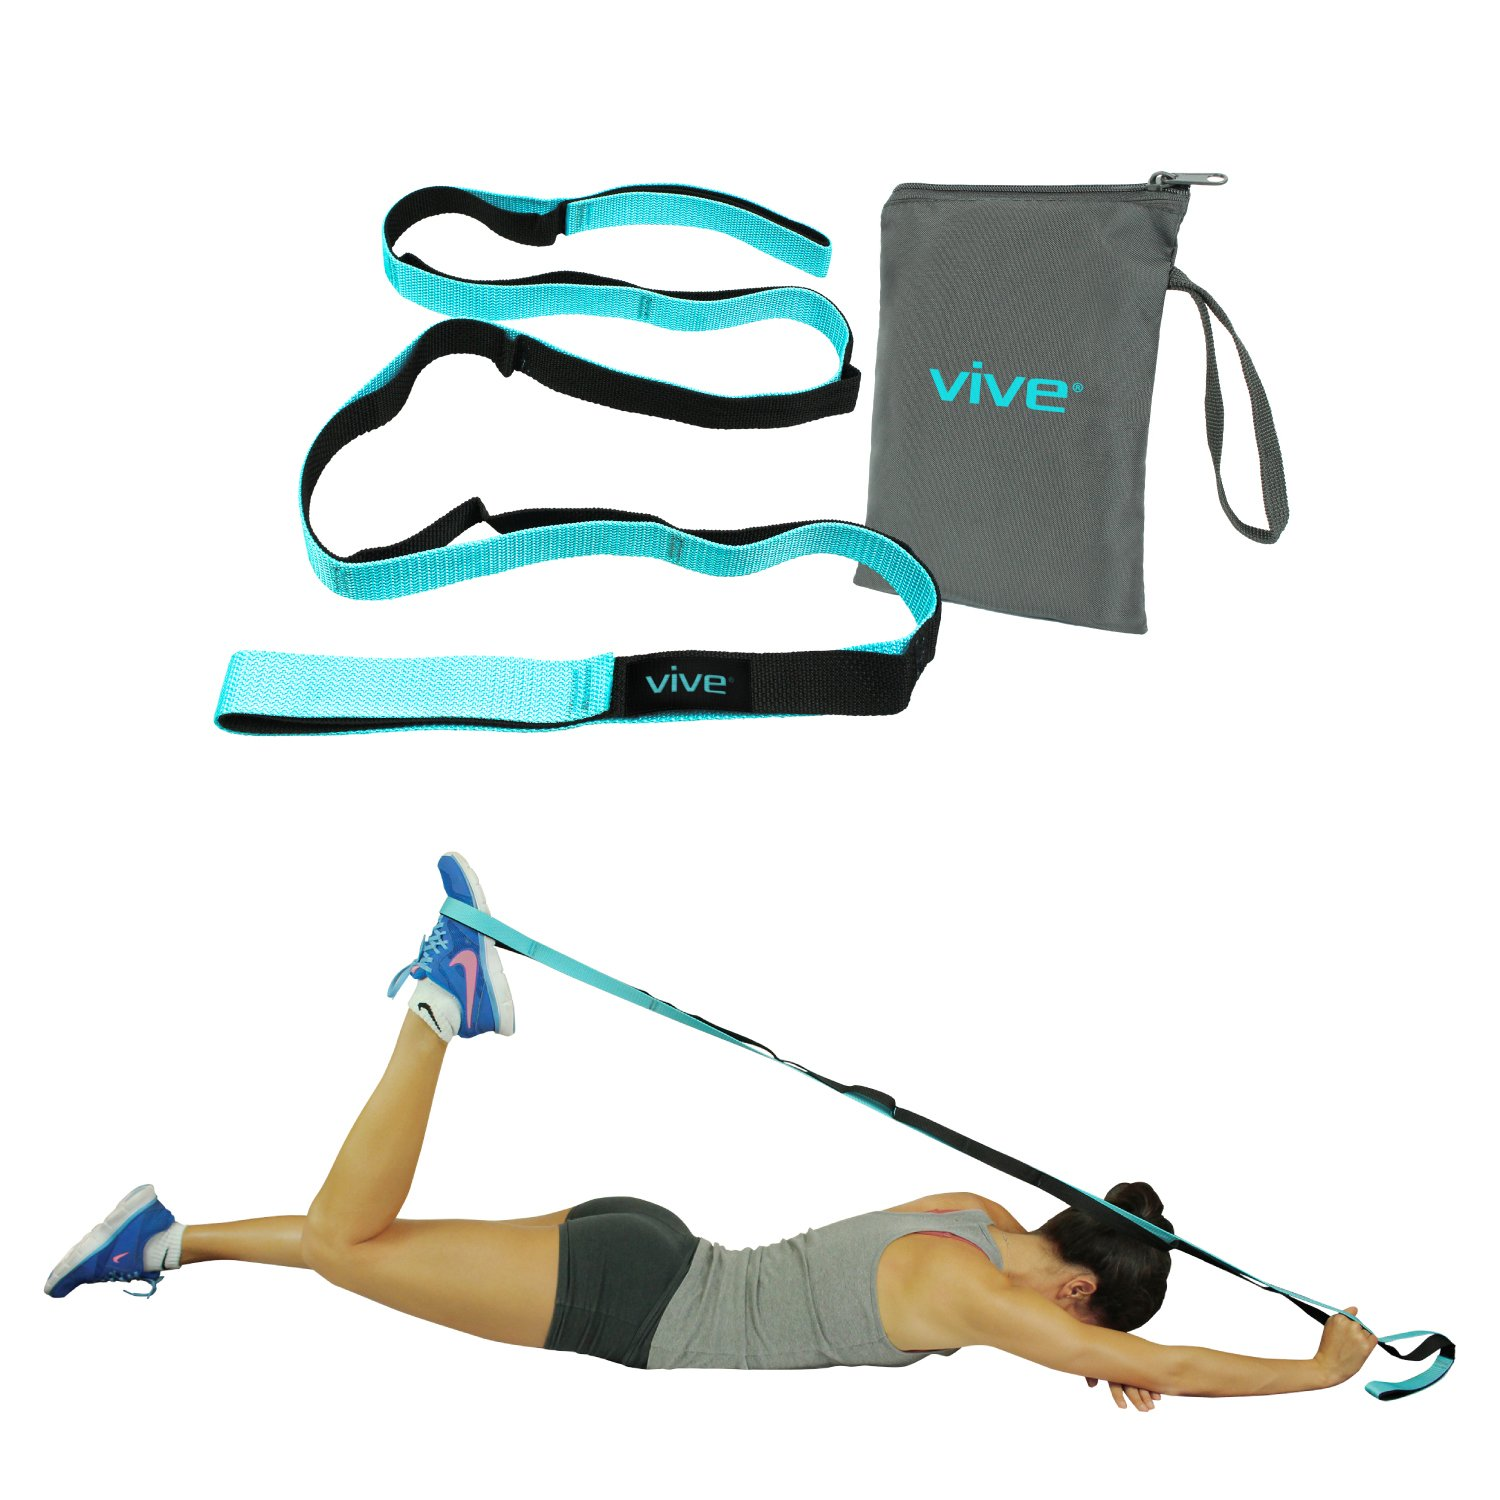 Home Gym Equipment for Rehab Pilates Fitness Strap Band for Waist Trainer Leg Stretching Go Upside-Down for Yoga Practitioner Ballet Dancer Gymnastics Relieve Pain Stiffness Aerial Yoga Strap